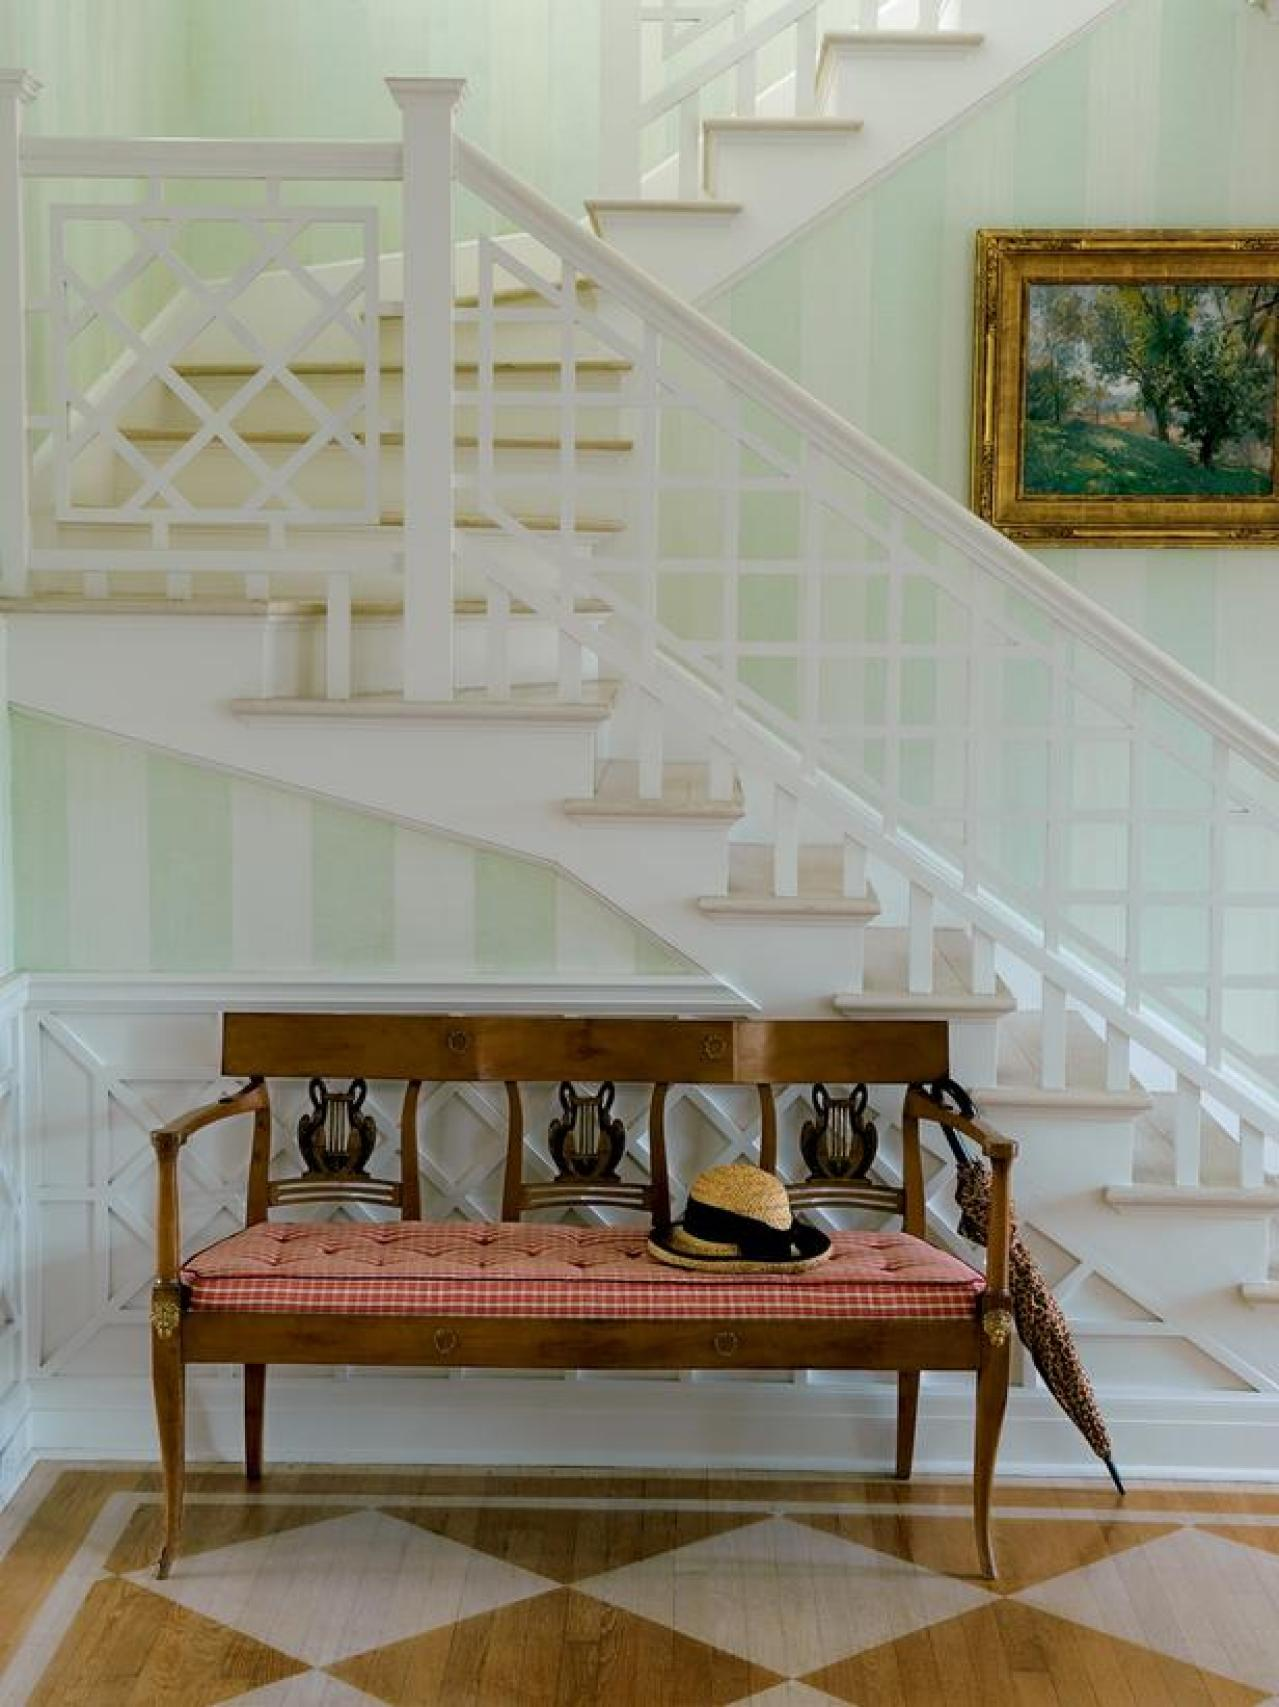 Stunning Staircases: 61 Styles, Ideas and Solutions | DIY Network ...